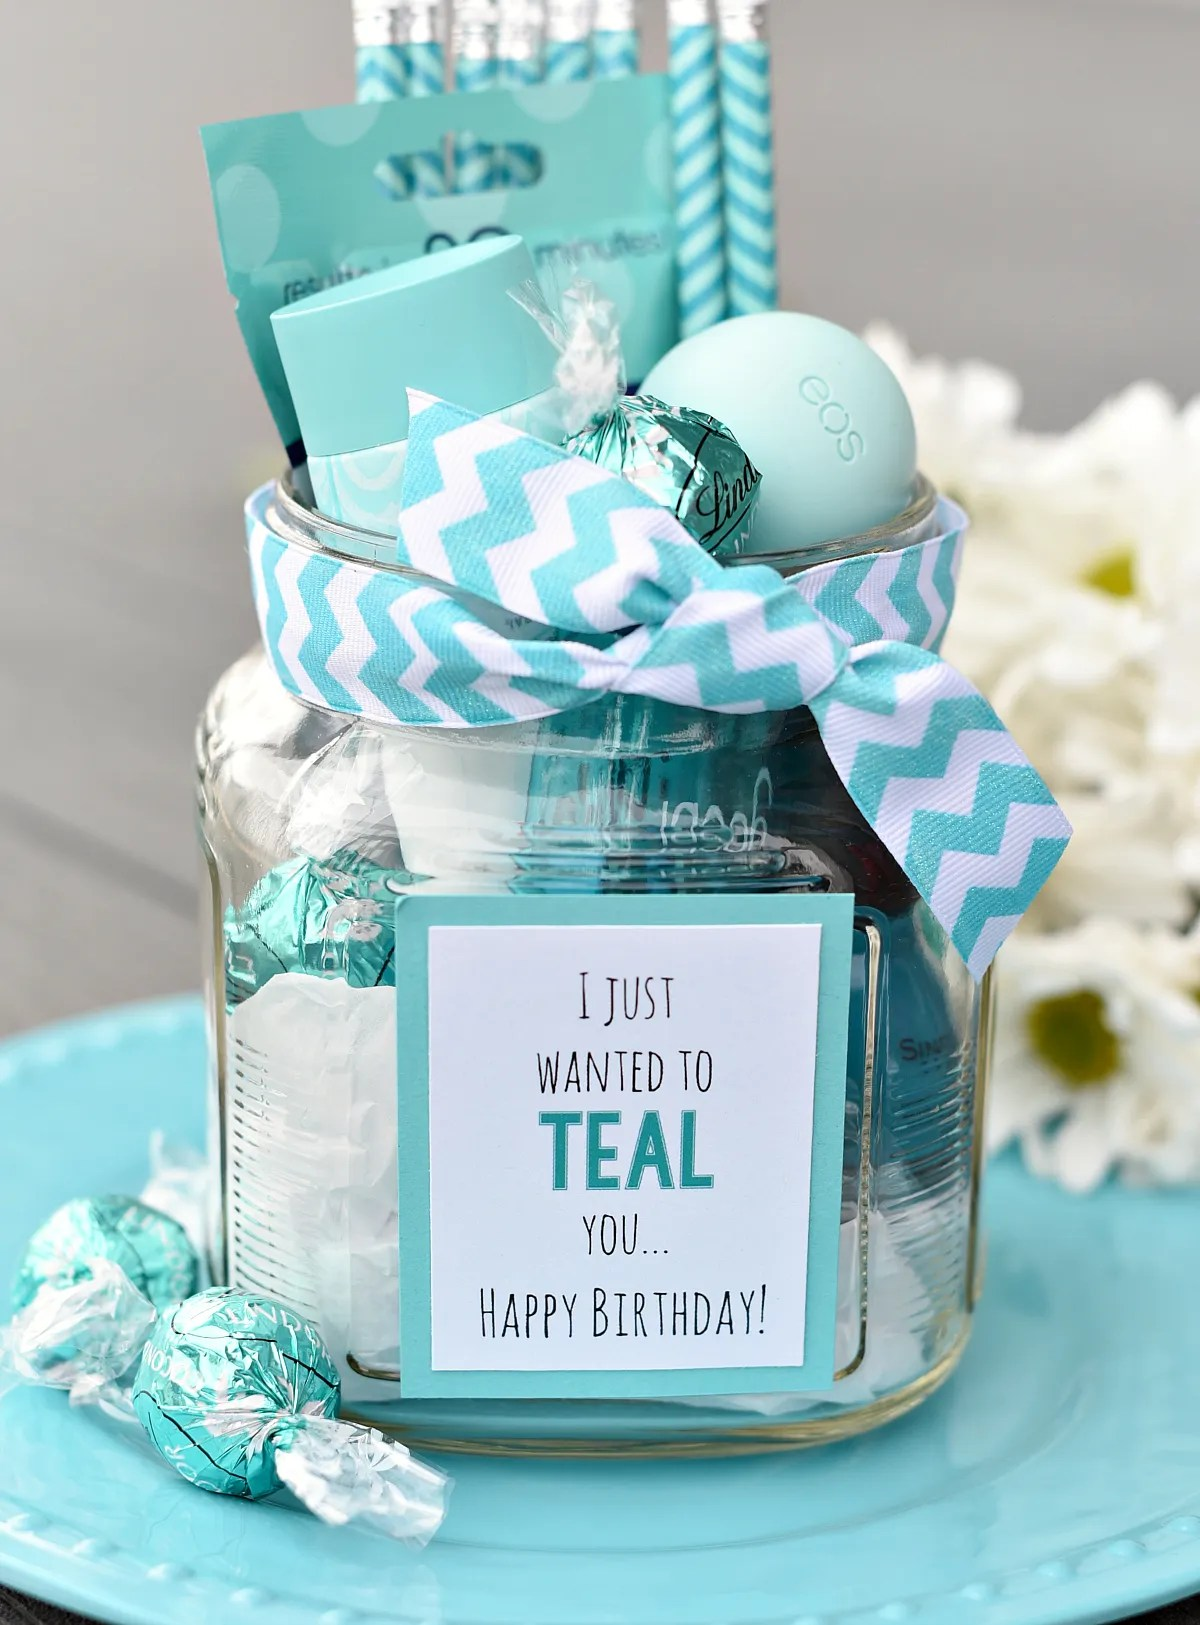 Teal Birthday Gift Idea for Friends - Fun-Squared